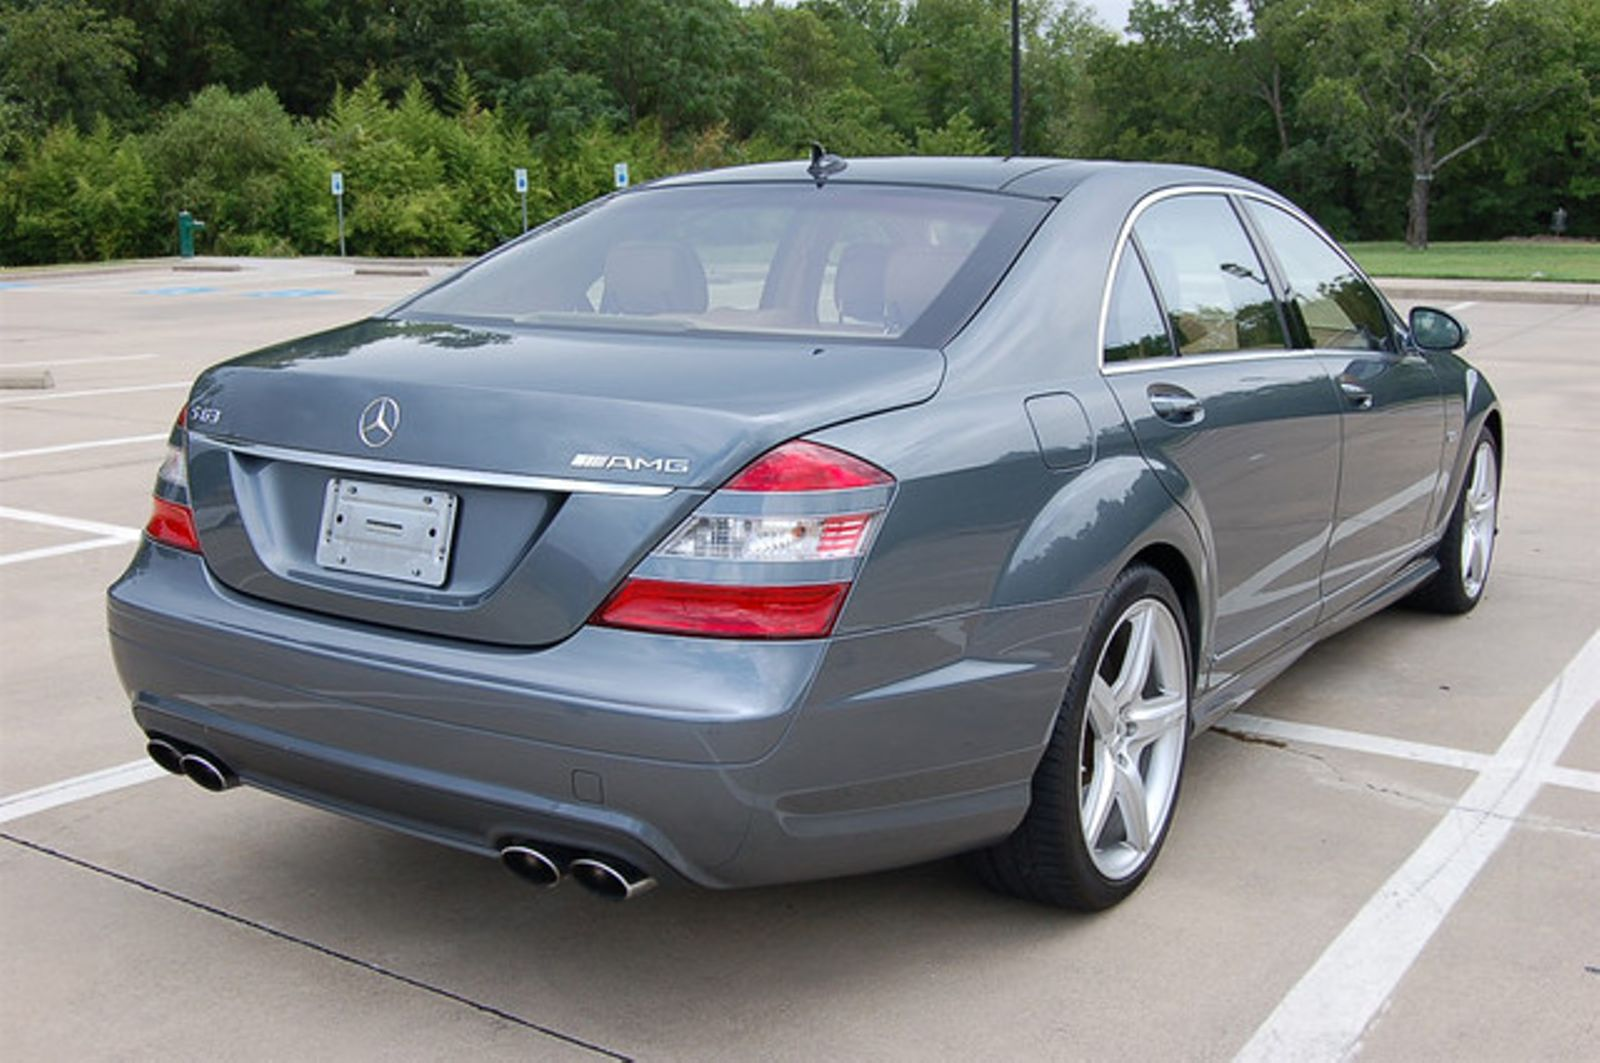 2009 Mercedes Benz S63 Amg Only 54k Mls Garland Texas 75040